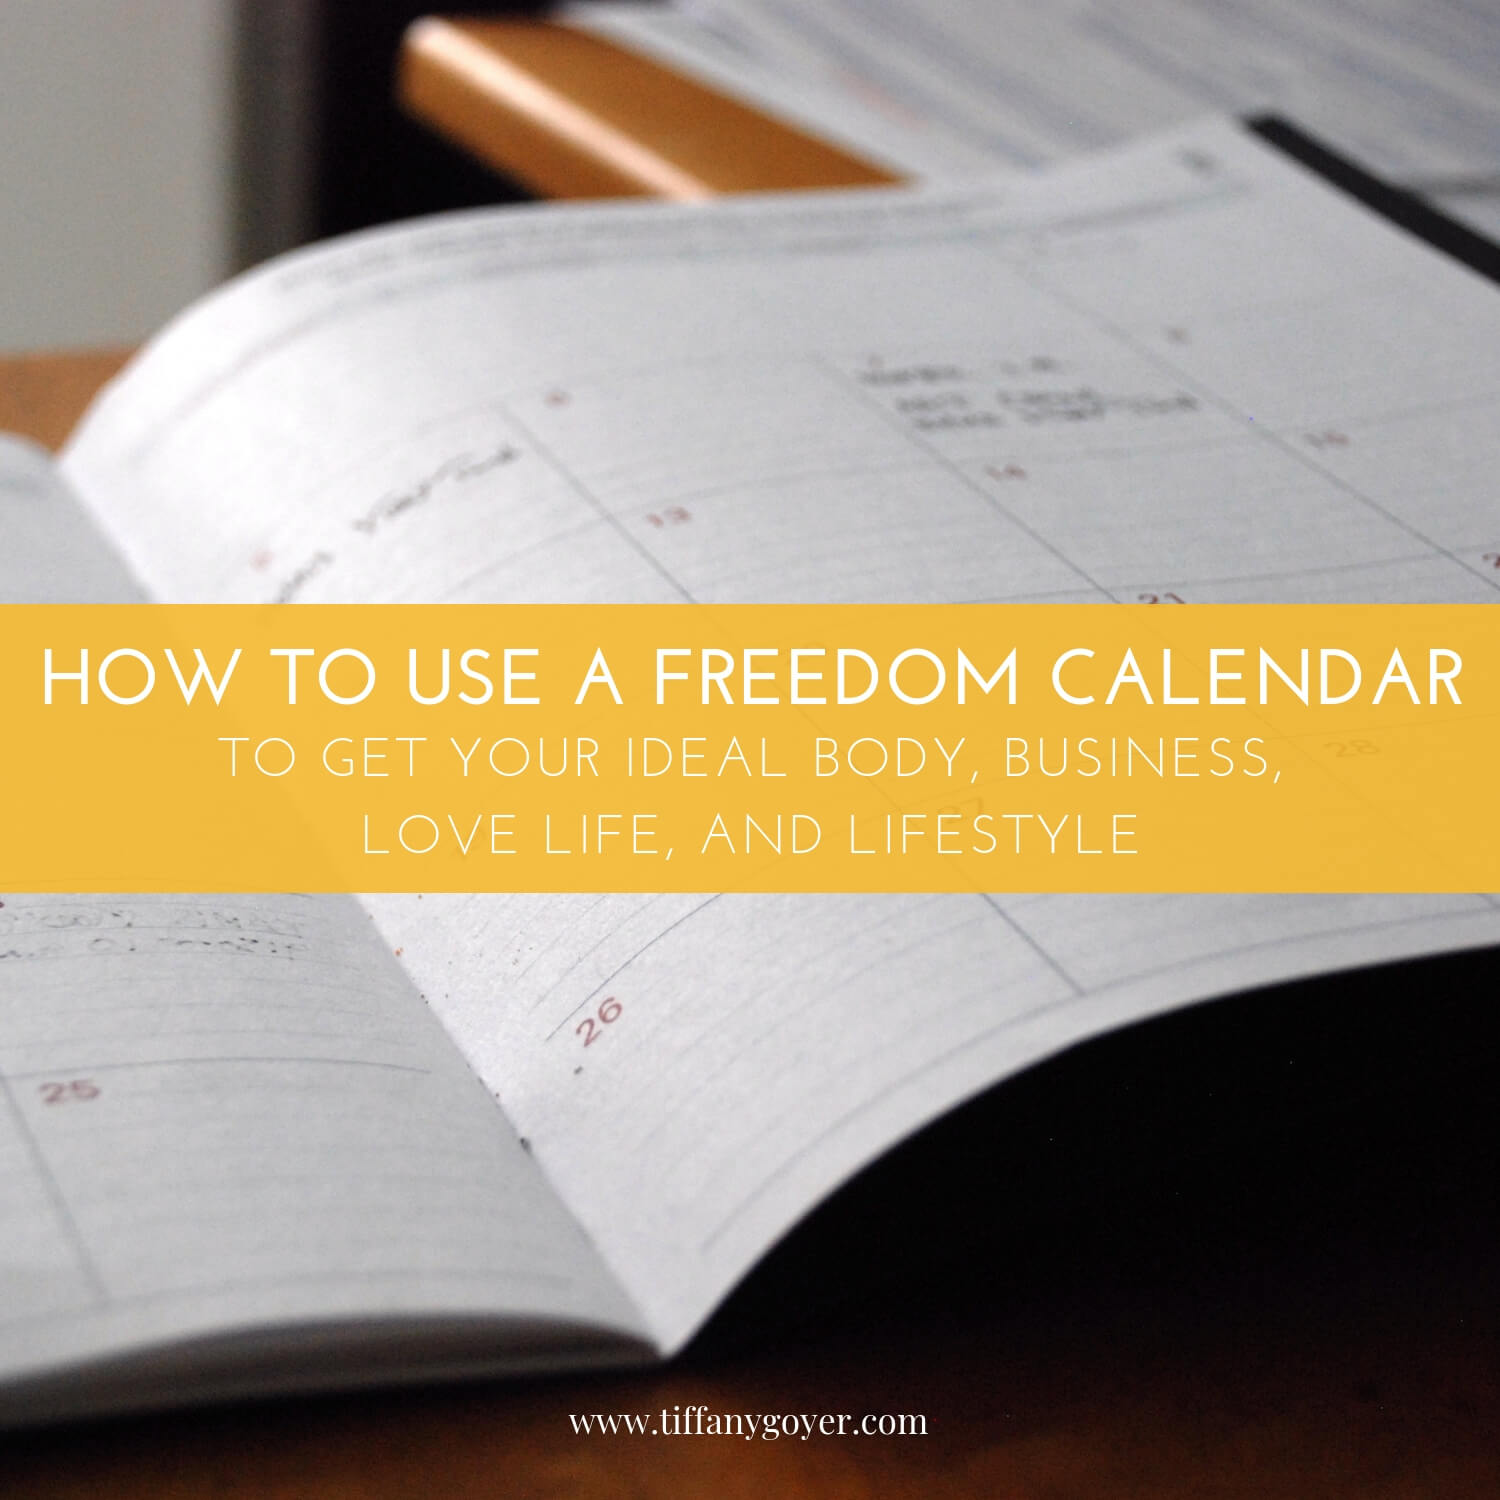 How To Use A Freedom Calendar To Get Your Ideal Body Business Love